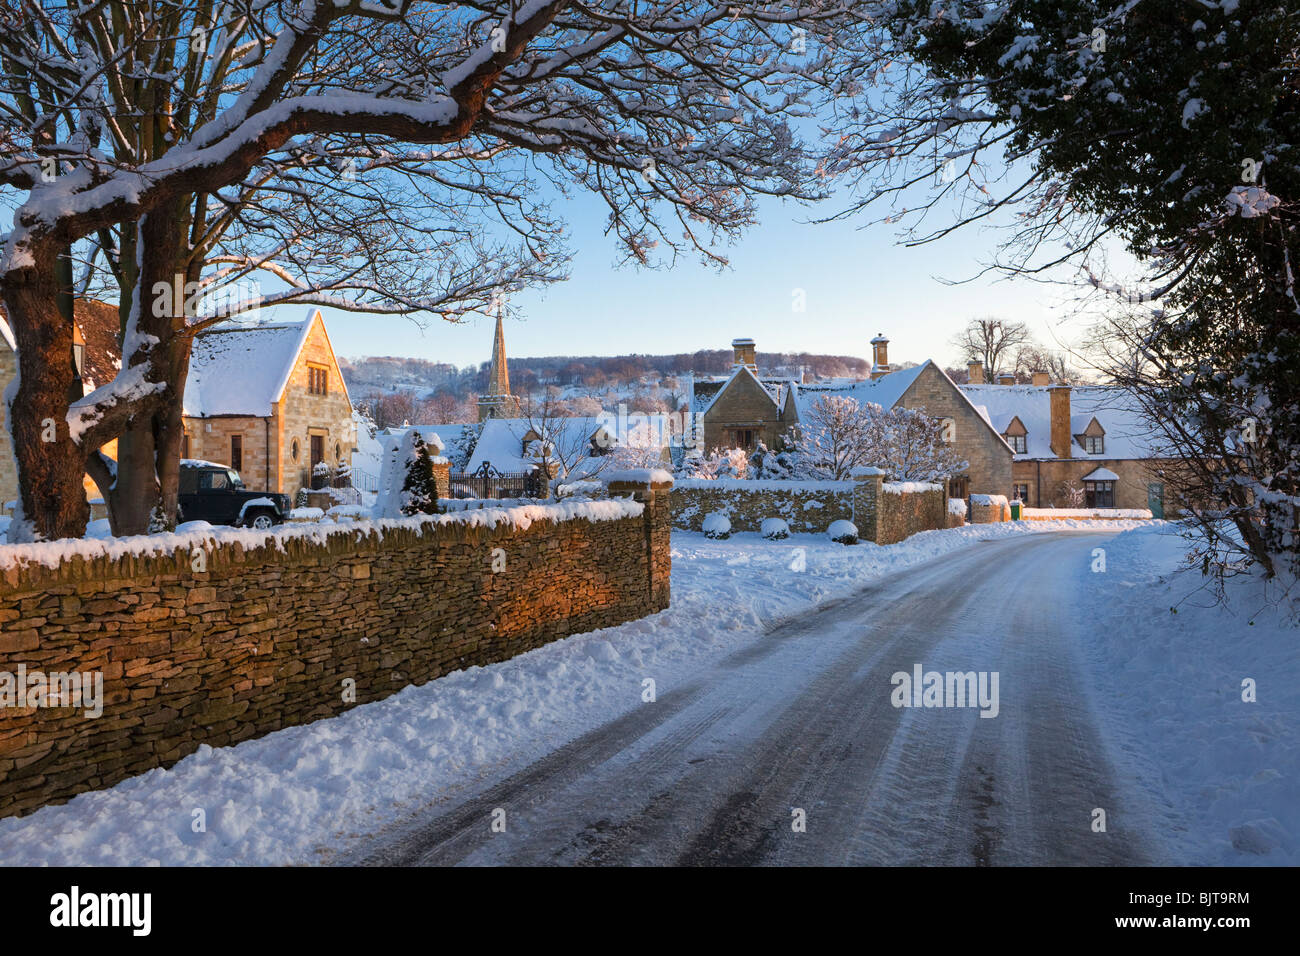 Snow Falling Live Wallpaper Download Dusk Falling On Winter Snow In The Cotswold Village Of